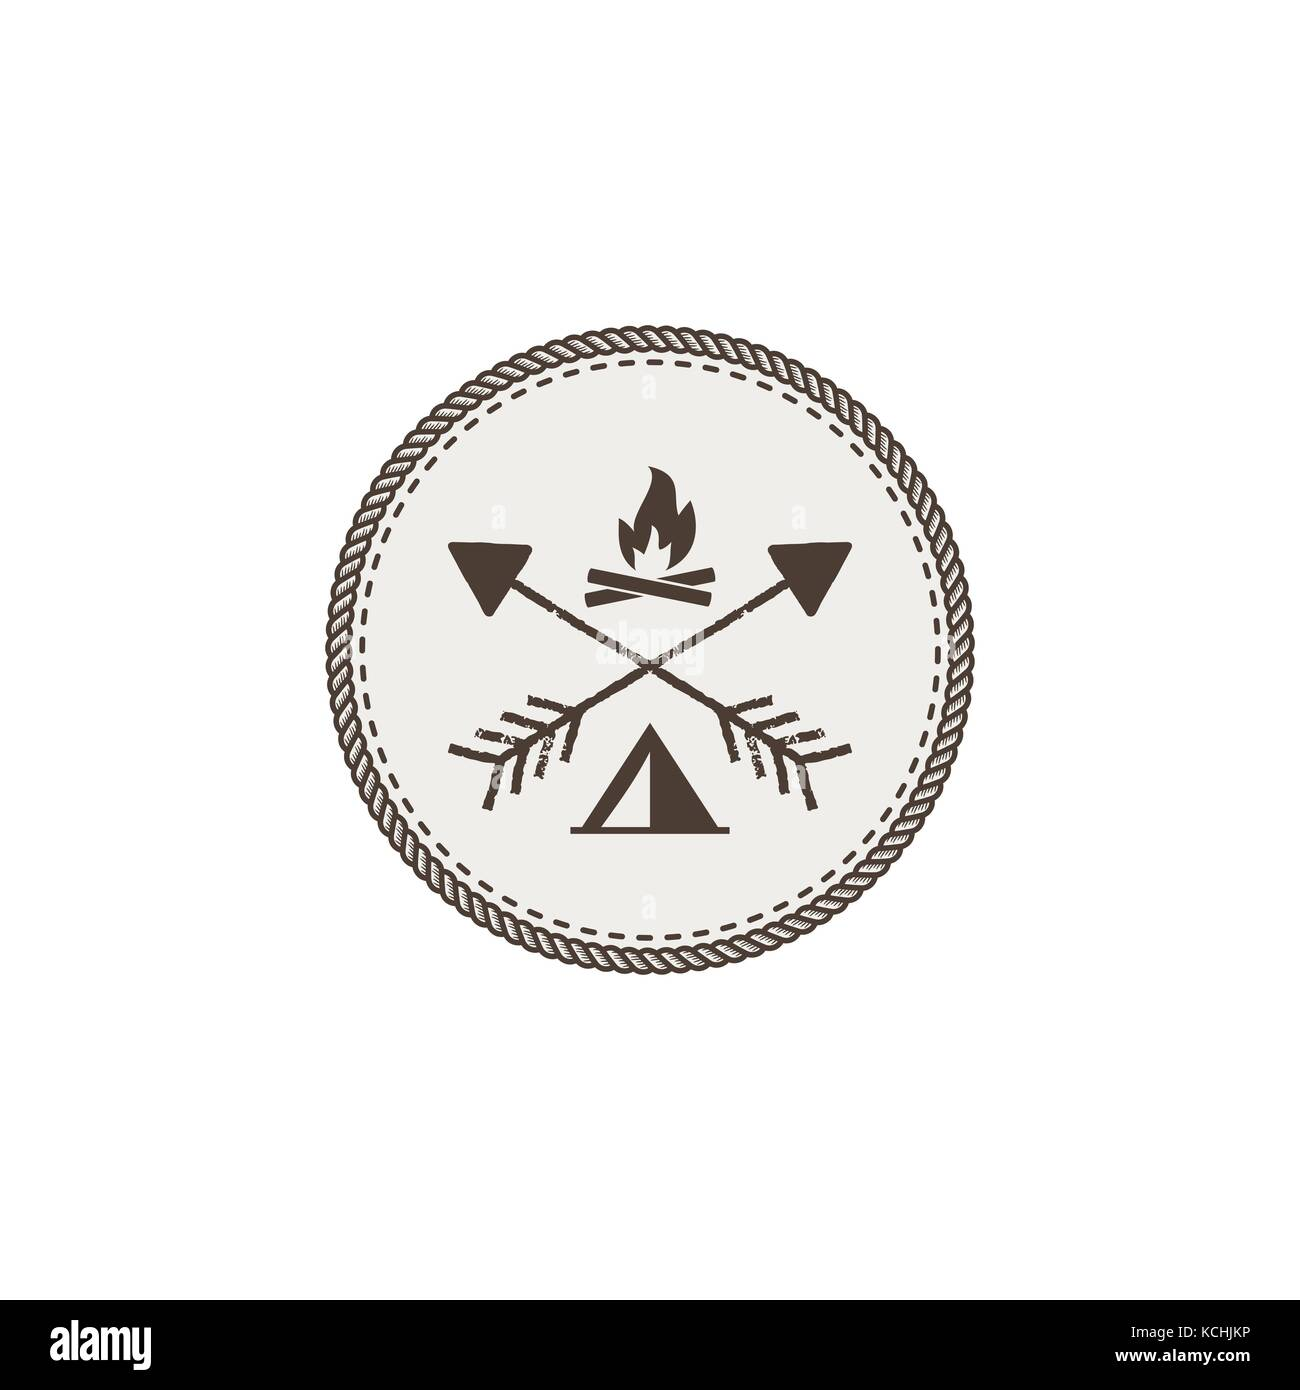 Outdoor activity patch. Adventure icon with bonfire and tent. Stock vector illustration isolated on white background  sc 1 st  Alamy & Outdoor activity patch. Adventure icon with bonfire and tent ...